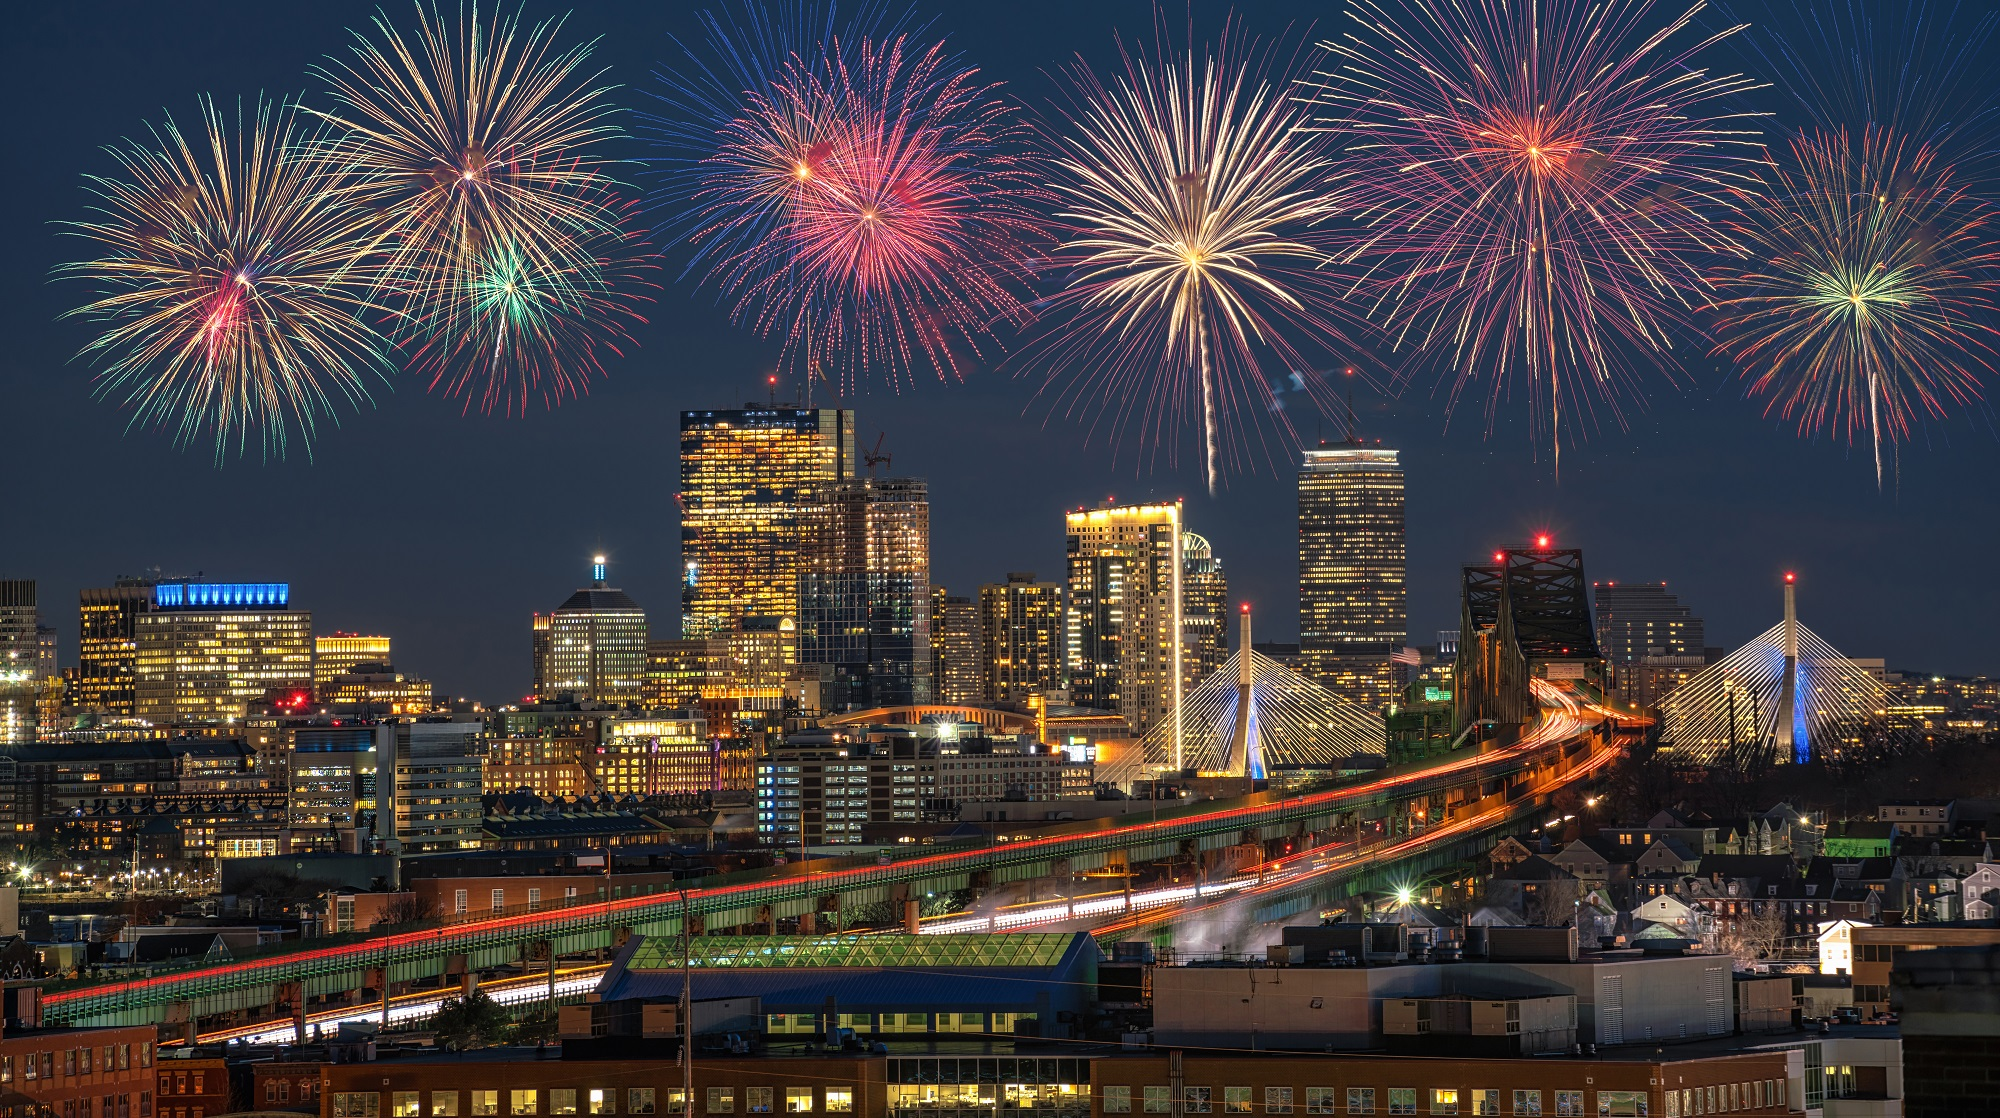 Fourth of July fireworks over city.